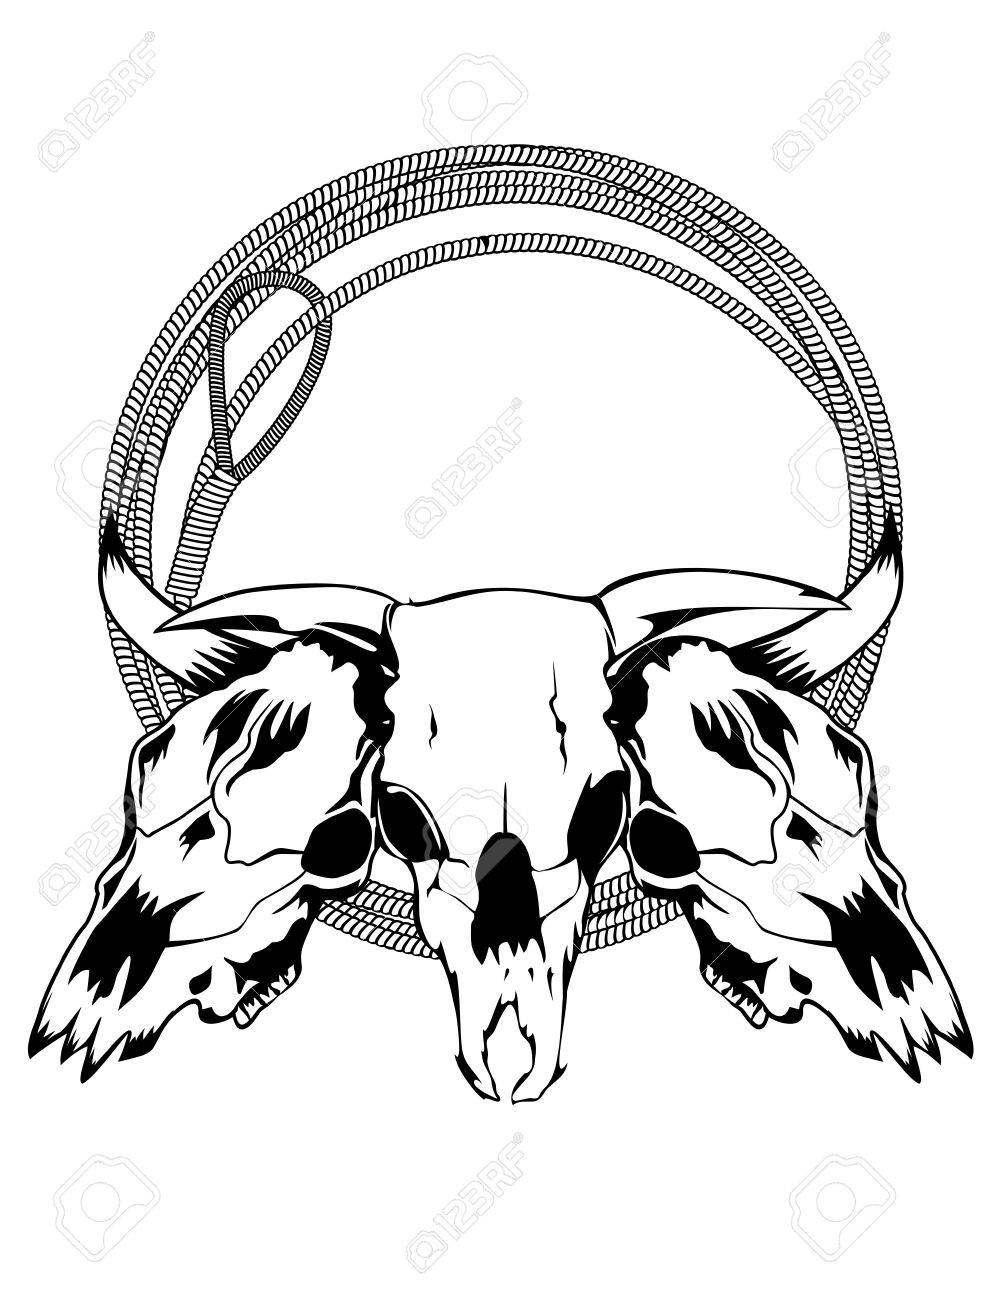 1 631 dead cow stock vector illustration and royalty free dead cow